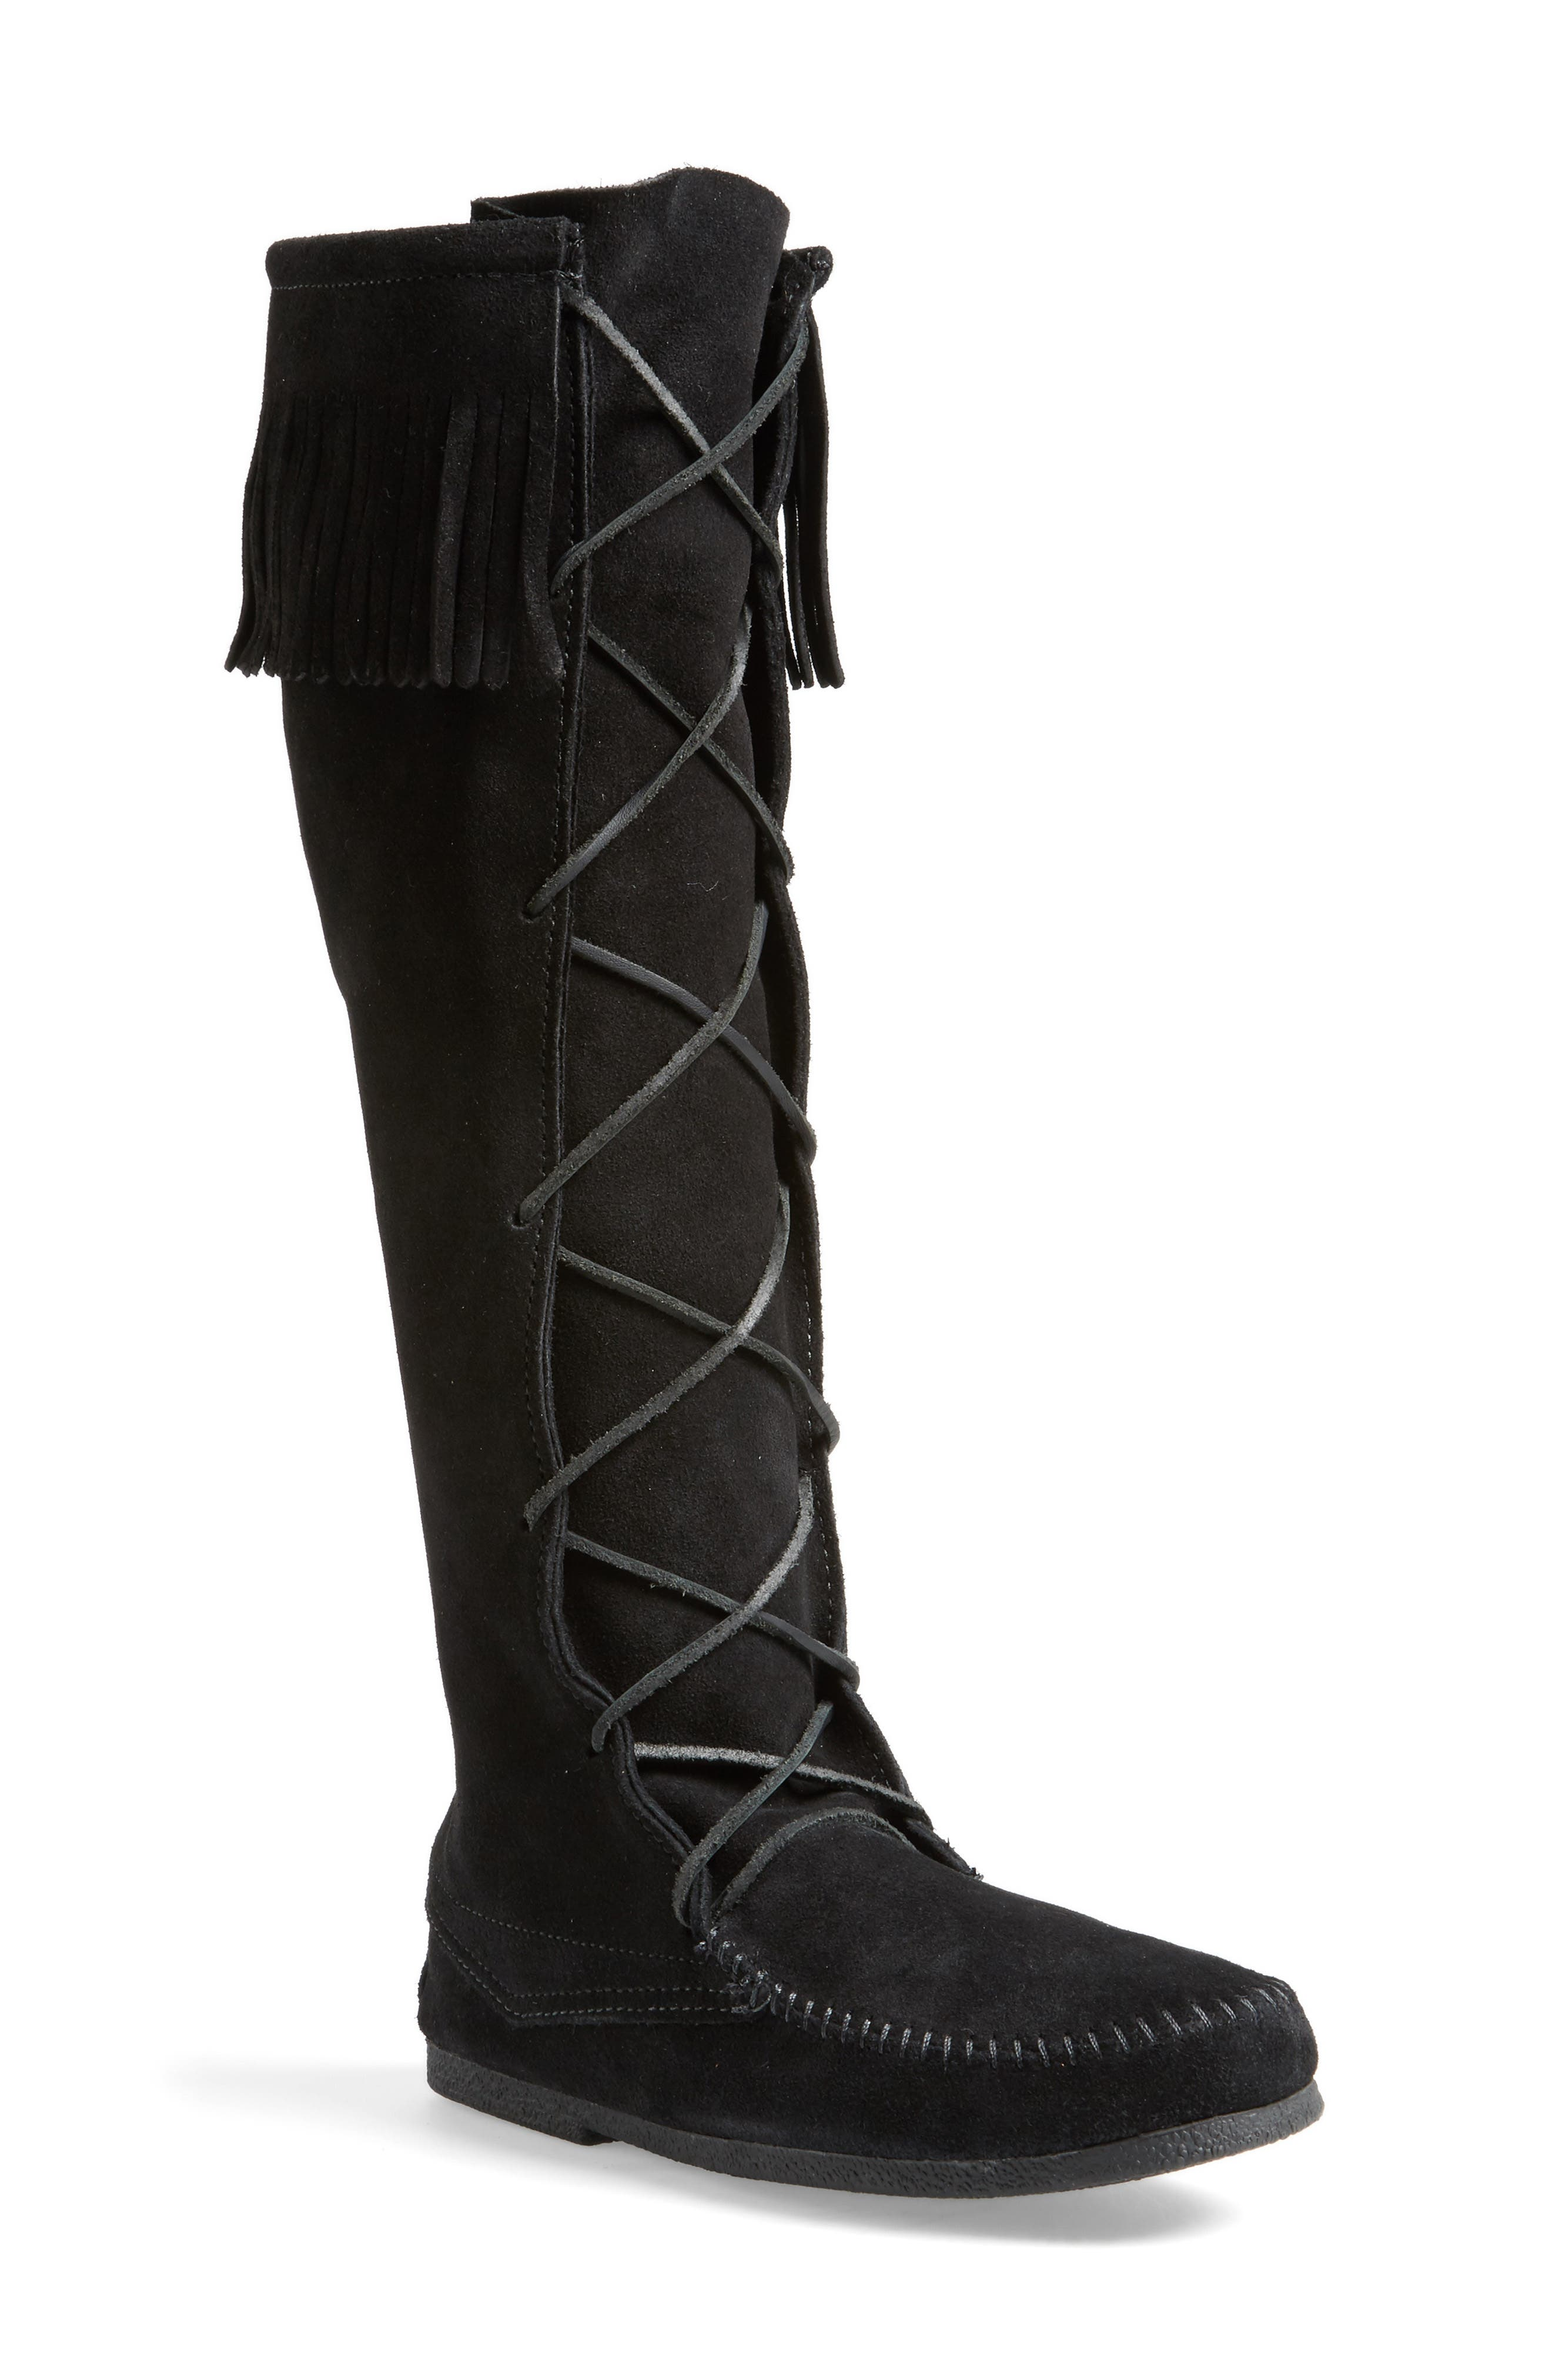 Knee High Moccasin Boot,                             Main thumbnail 1, color,                             BLACK SUEDE